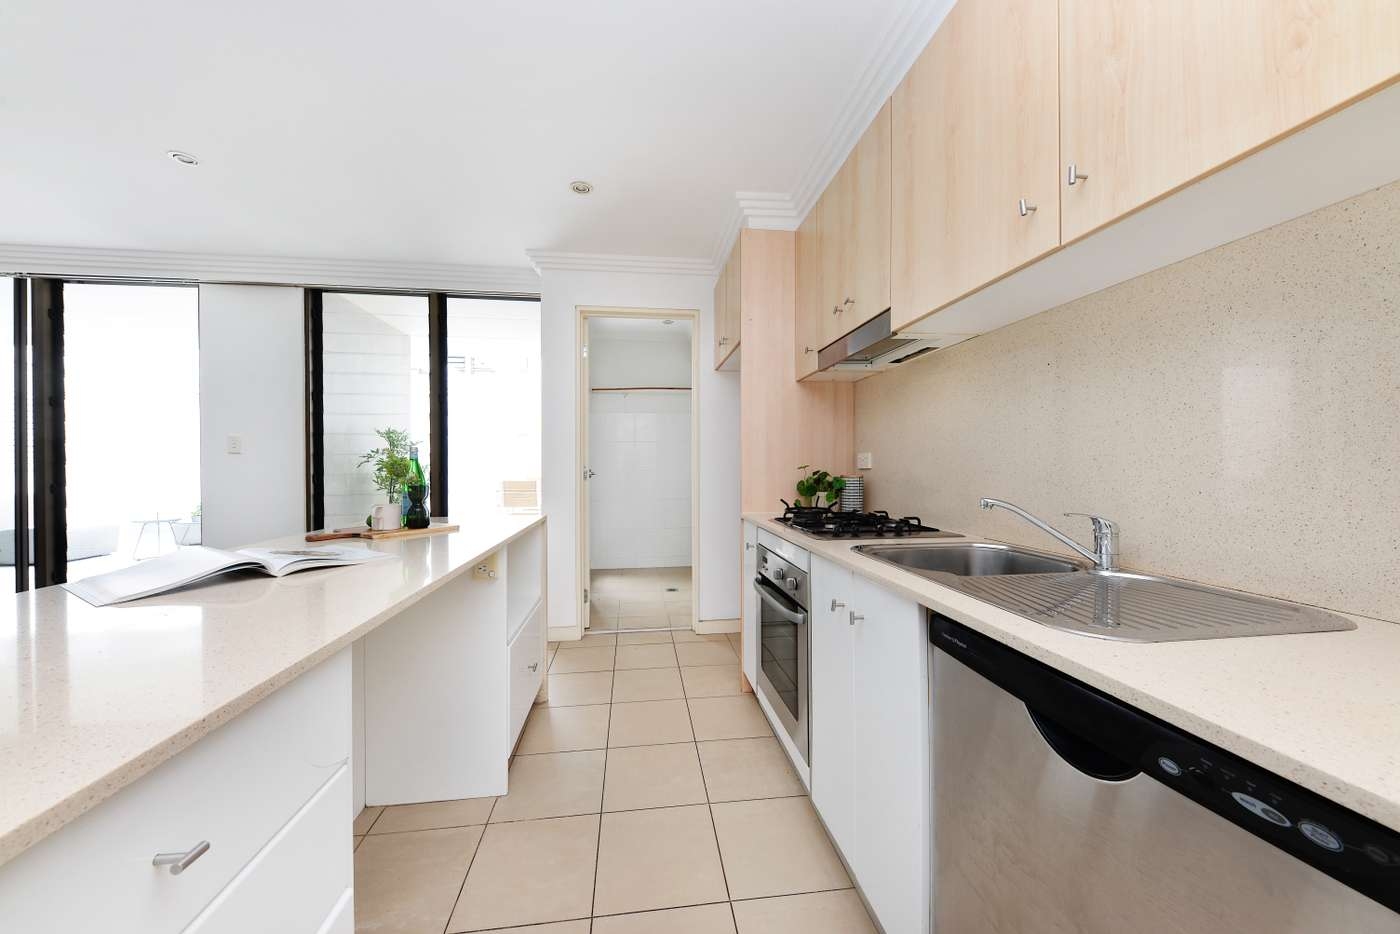 Sixth view of Homely unit listing, 311/200 Maroubra Road, Maroubra NSW 2035